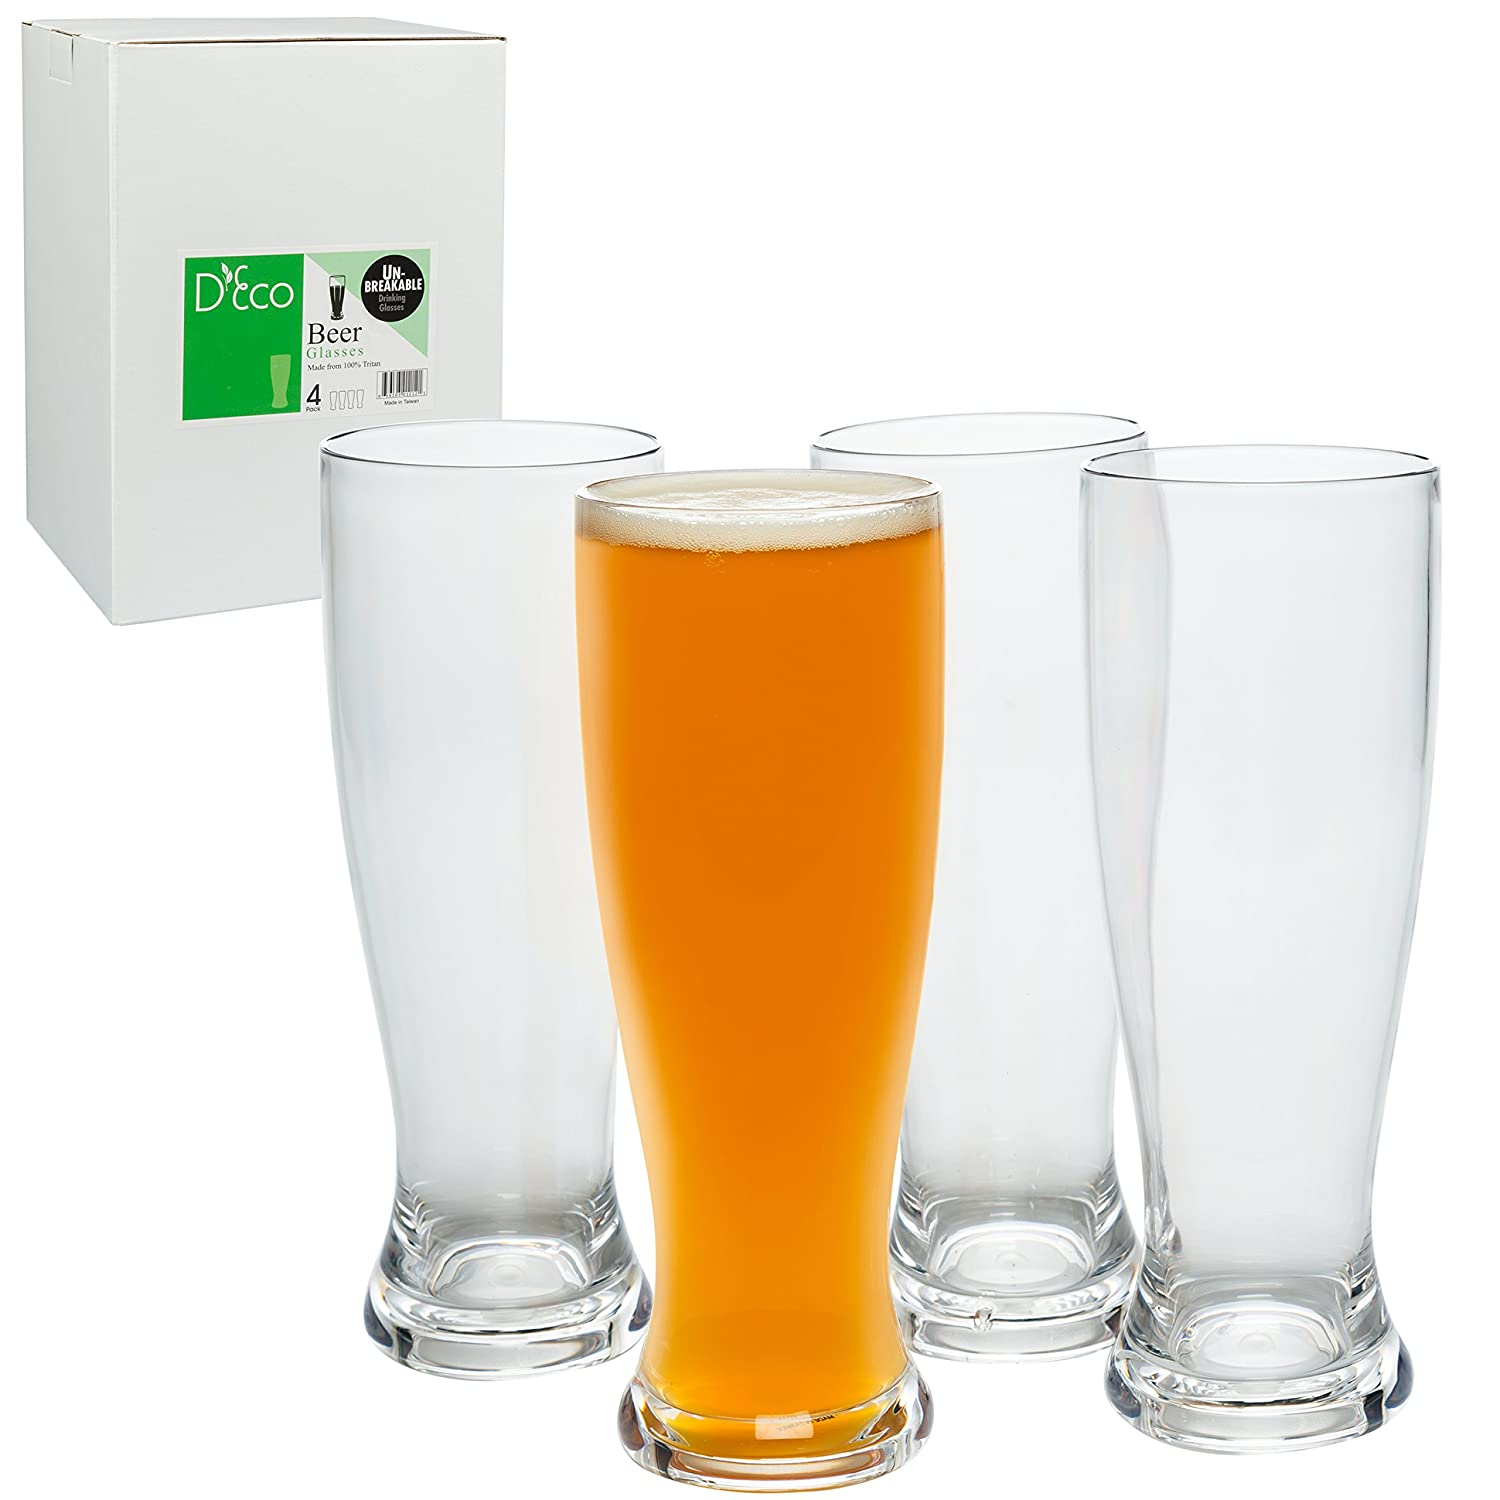 Unbreakable Beer Glasses 24oz - 100% Tritan - Set of 4 - Shatterproof, Reusable, Dishwasher Safe D'Eco SYNCHKG039729